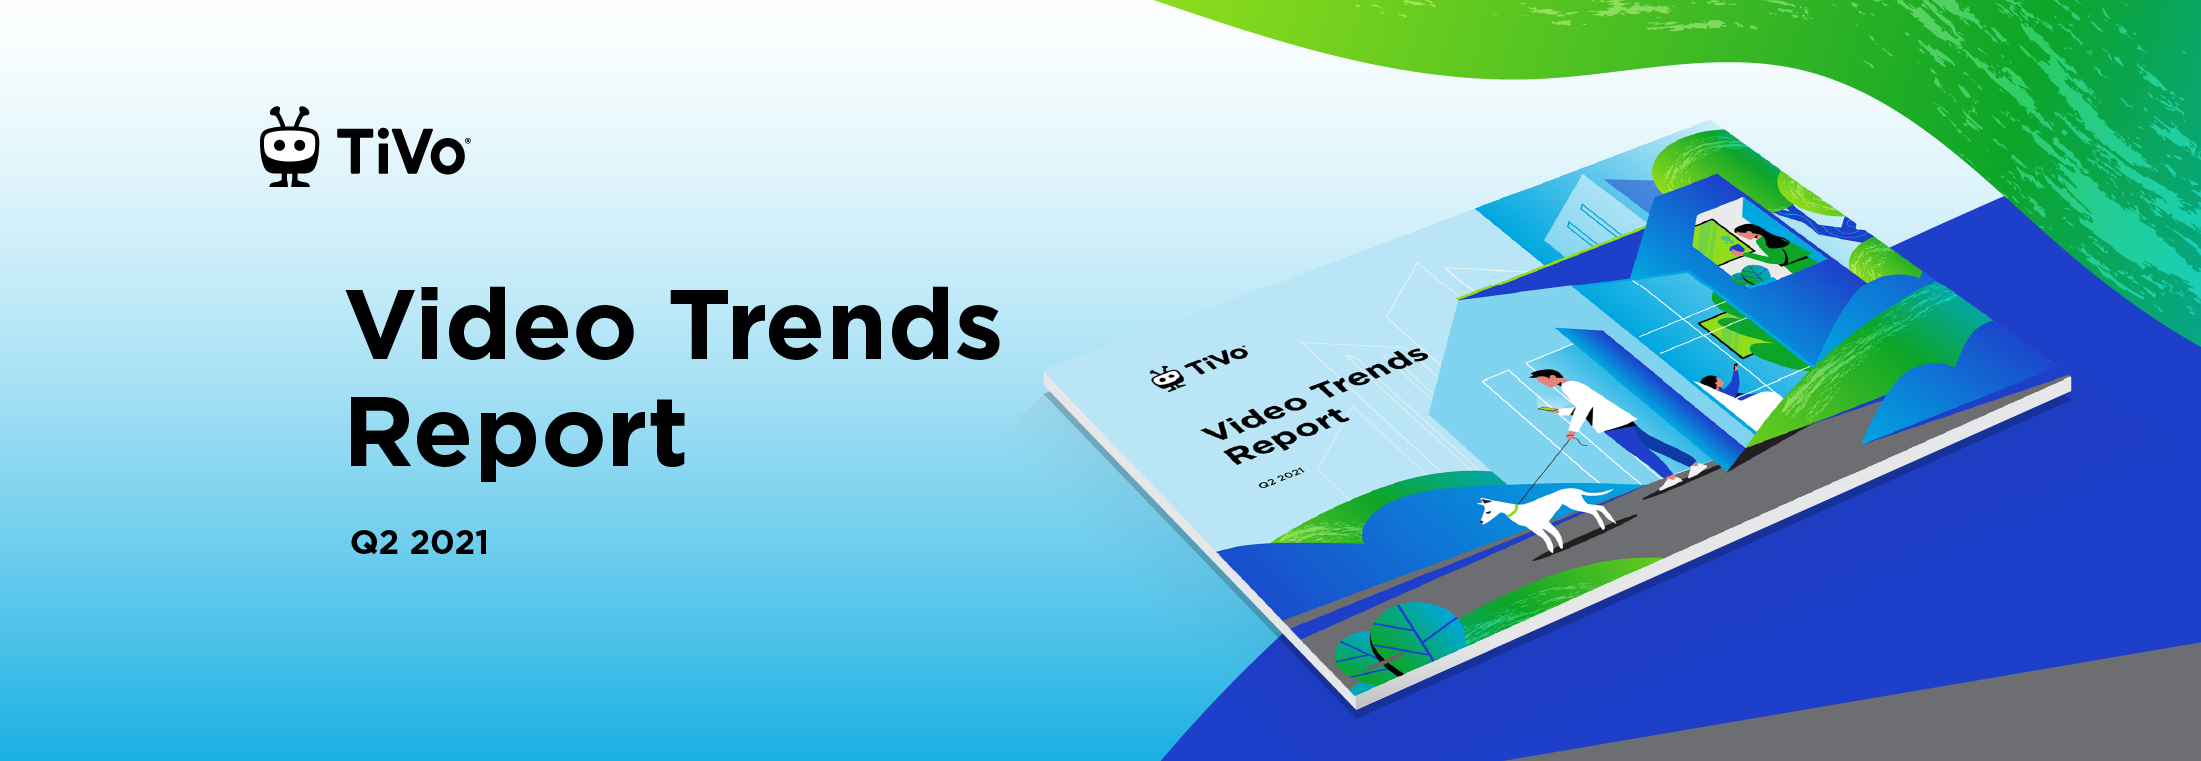 Video Trends Research From TiVo